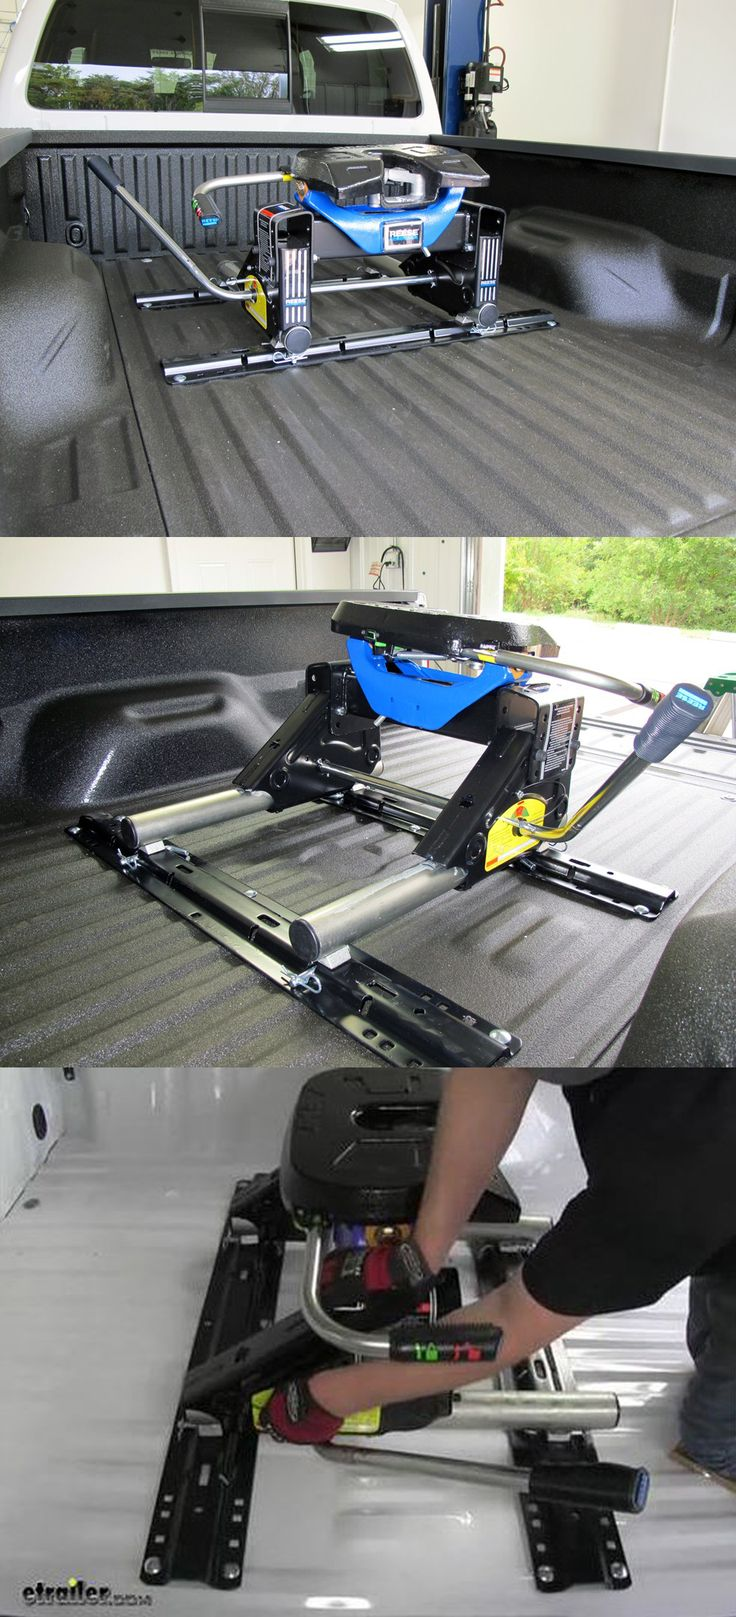 Need some guidance with installing your 5th wheel trailer hitch the link below provides a